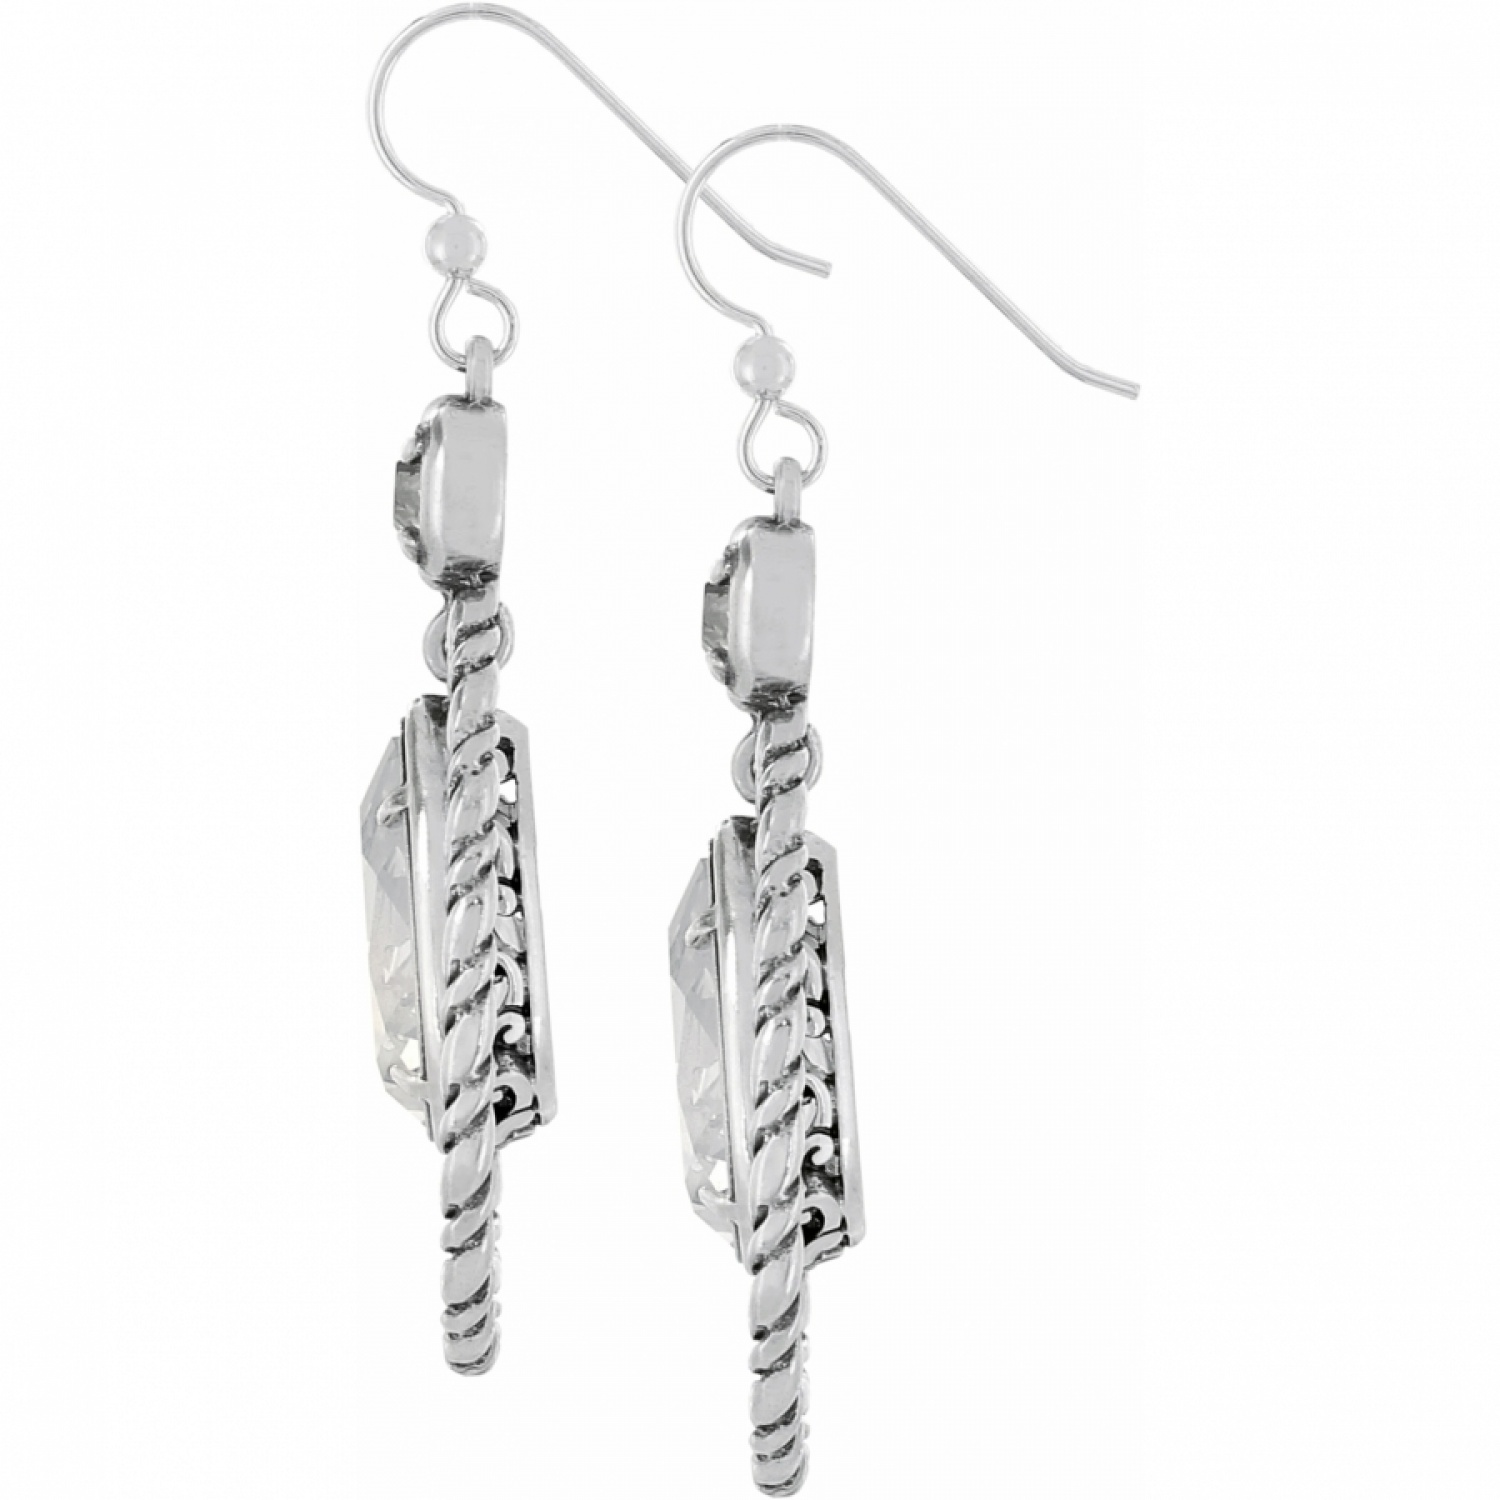 Compassionate Compassionate French Wire Earrings Earrings